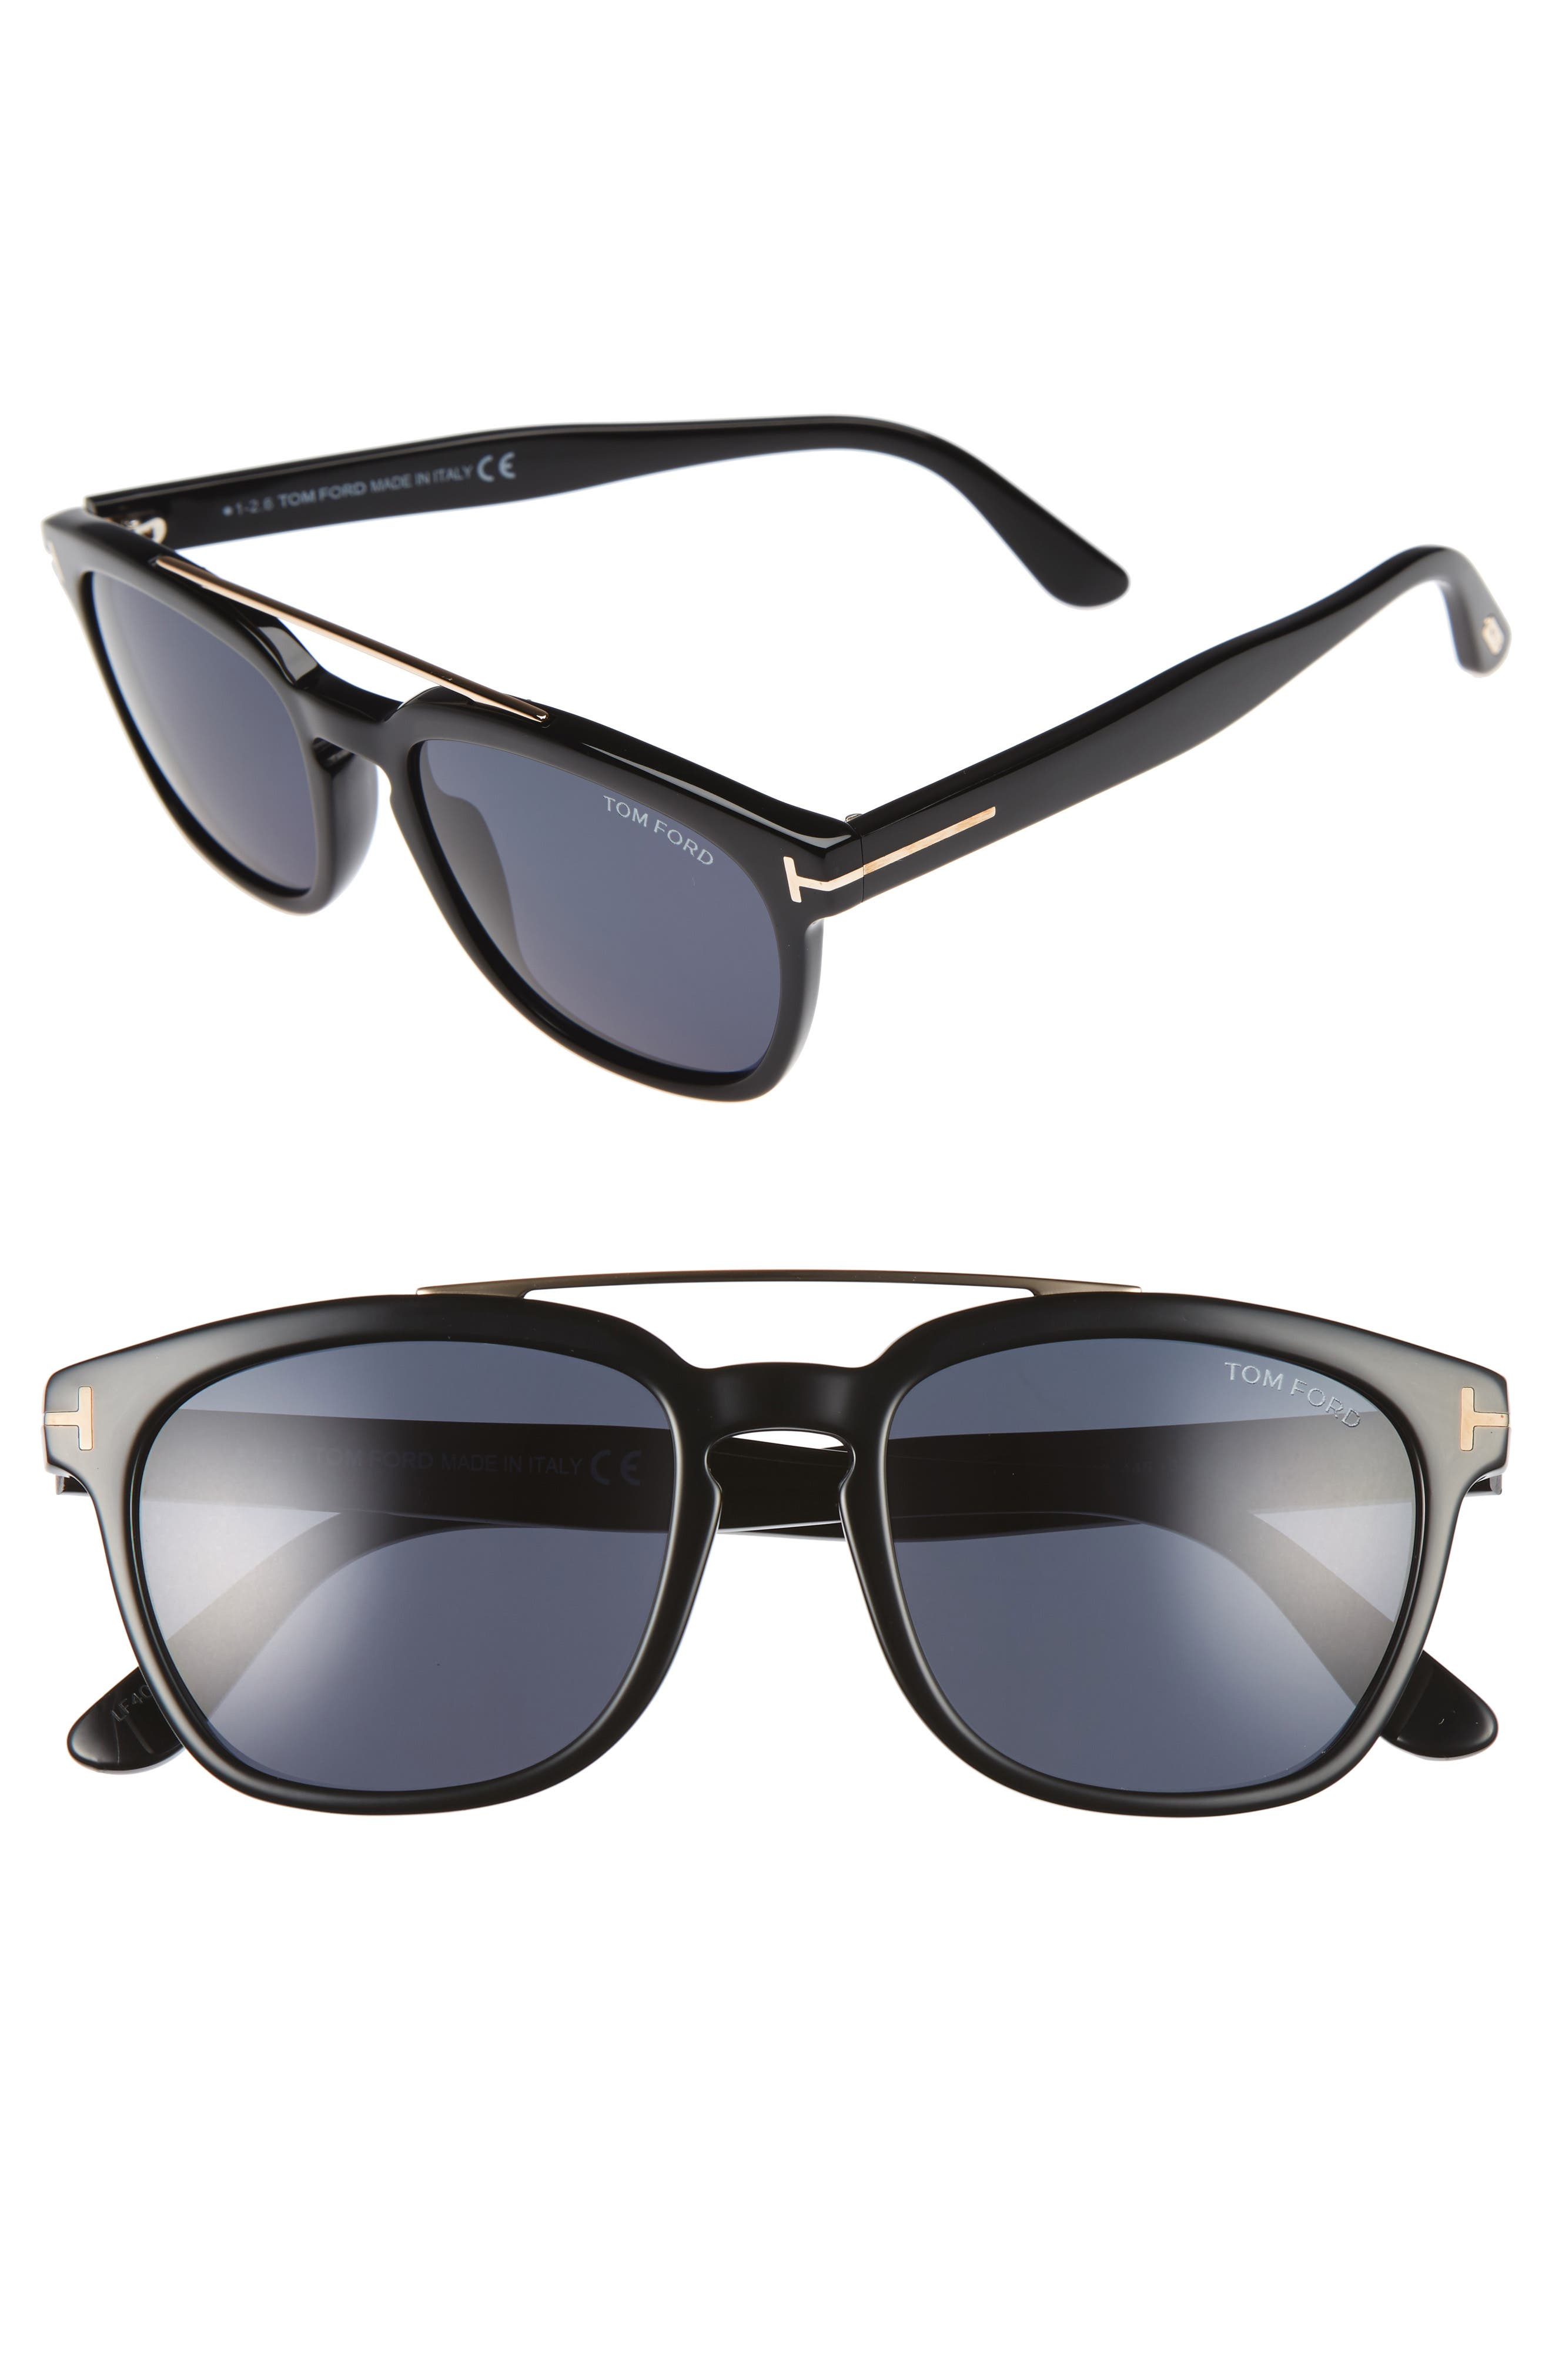 Main Image - Tom Ford Holt 54mm Sunglasses